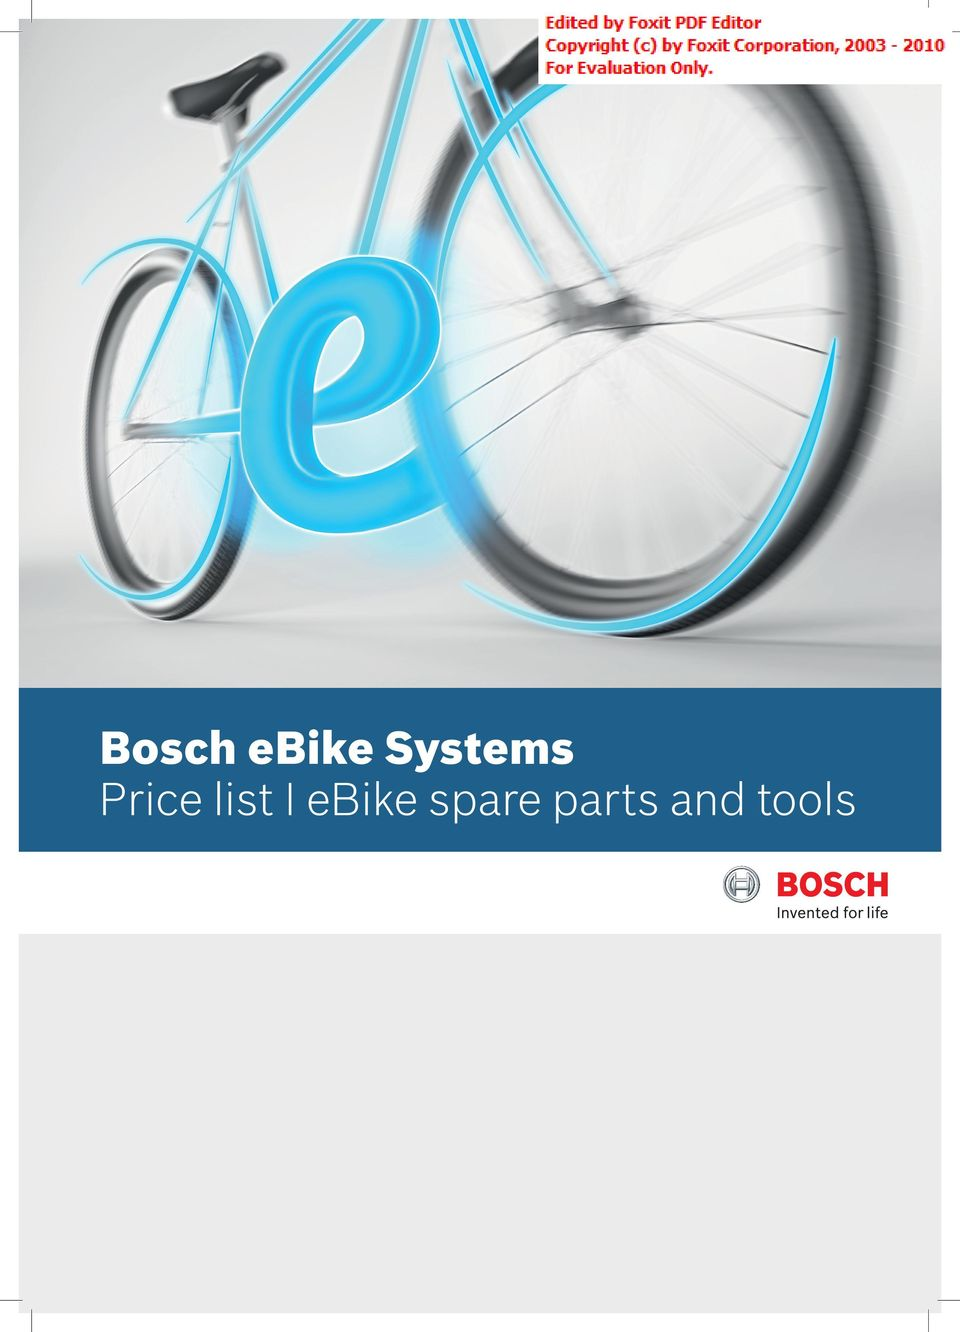 Bosch Ebike Systems Price List I Spare Parts And Tools Pdf Spannfixcircuitboardholder 2 En 1 Display Kit With Remote Control Holder In Presentation Box Intuvia 109